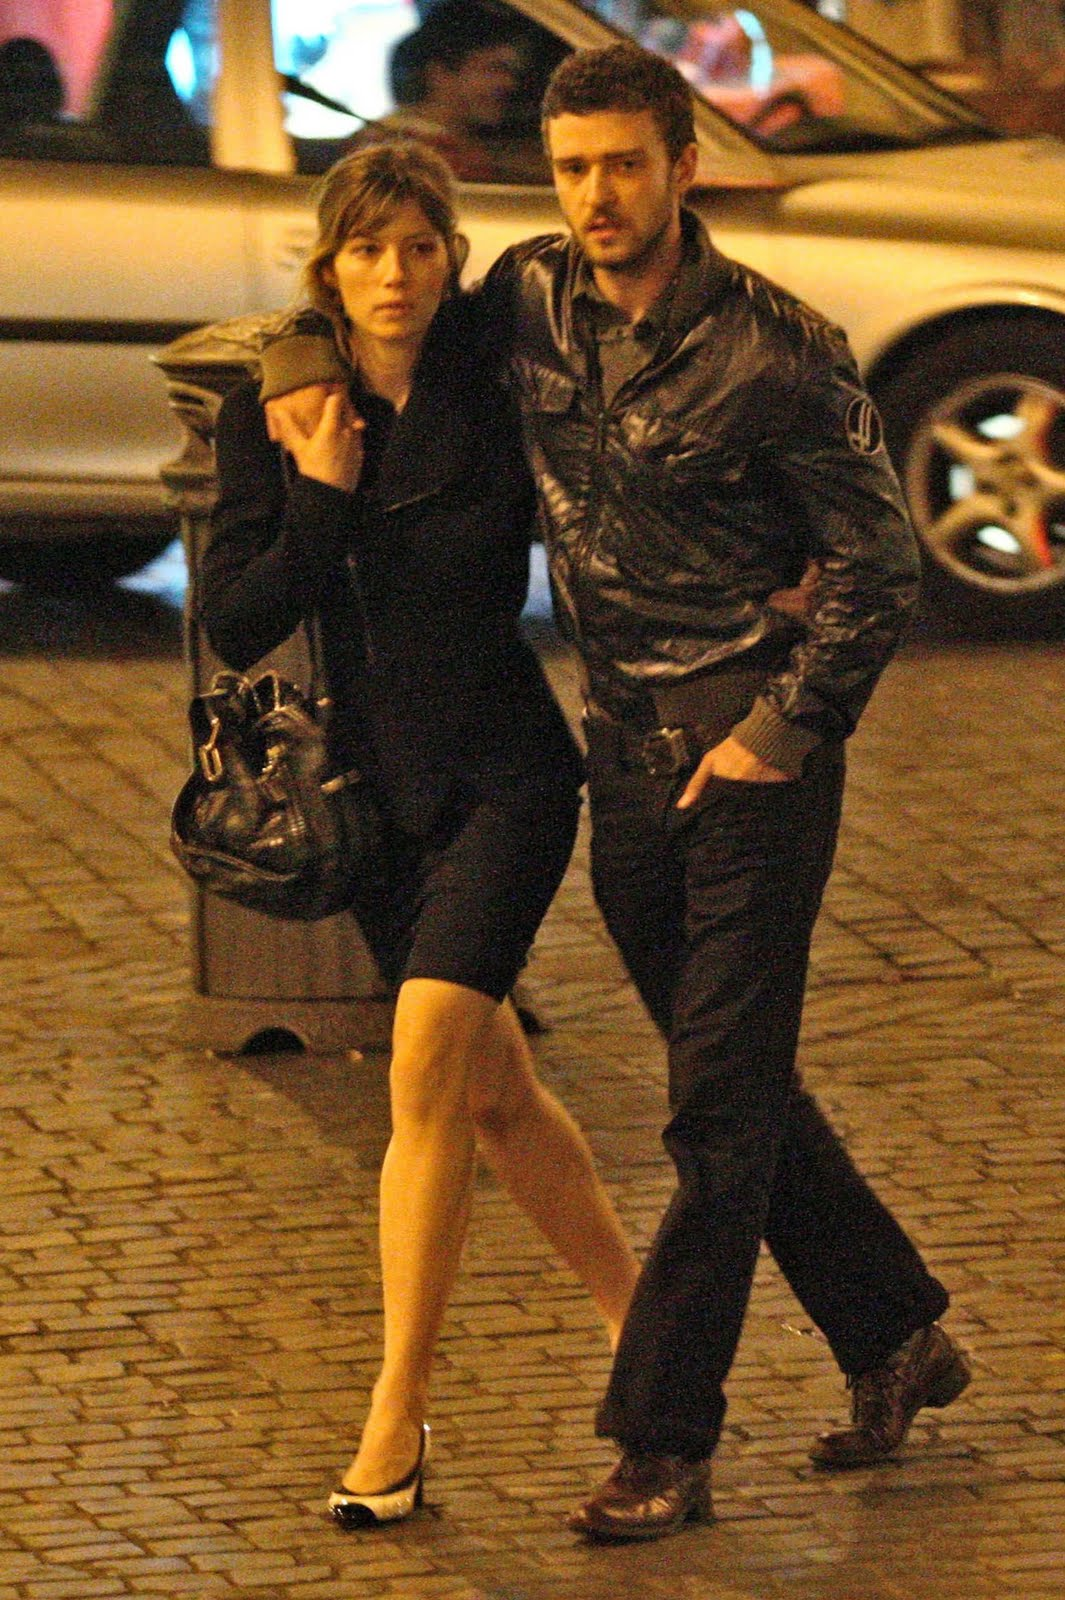 http://3.bp.blogspot.com/_pB39VNVB0Wk/TTGO887ETaI/AAAAAAAAFMY/sxYJXkp2KBU/s1600/jessica-biel-are-loved-up-in-rome9.jpg